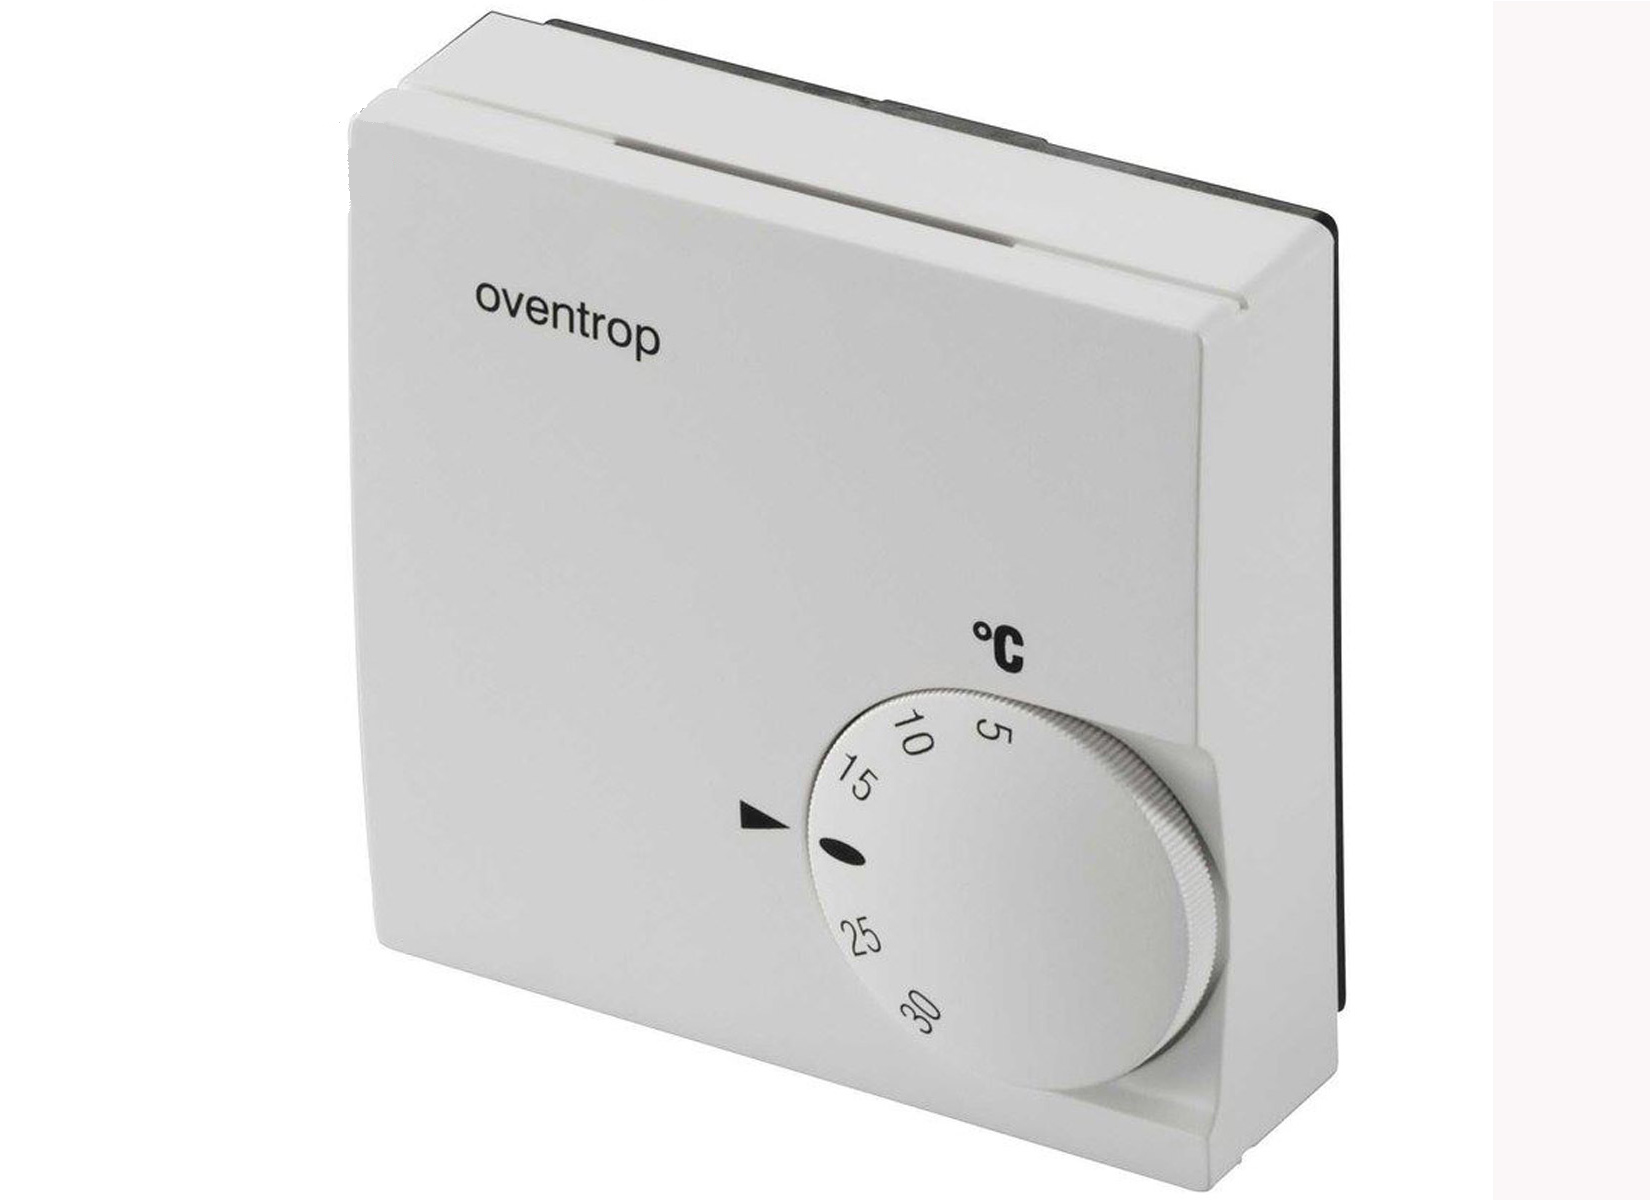 oventrop raumthermostat 24v fu bodenheizung aufputz. Black Bedroom Furniture Sets. Home Design Ideas